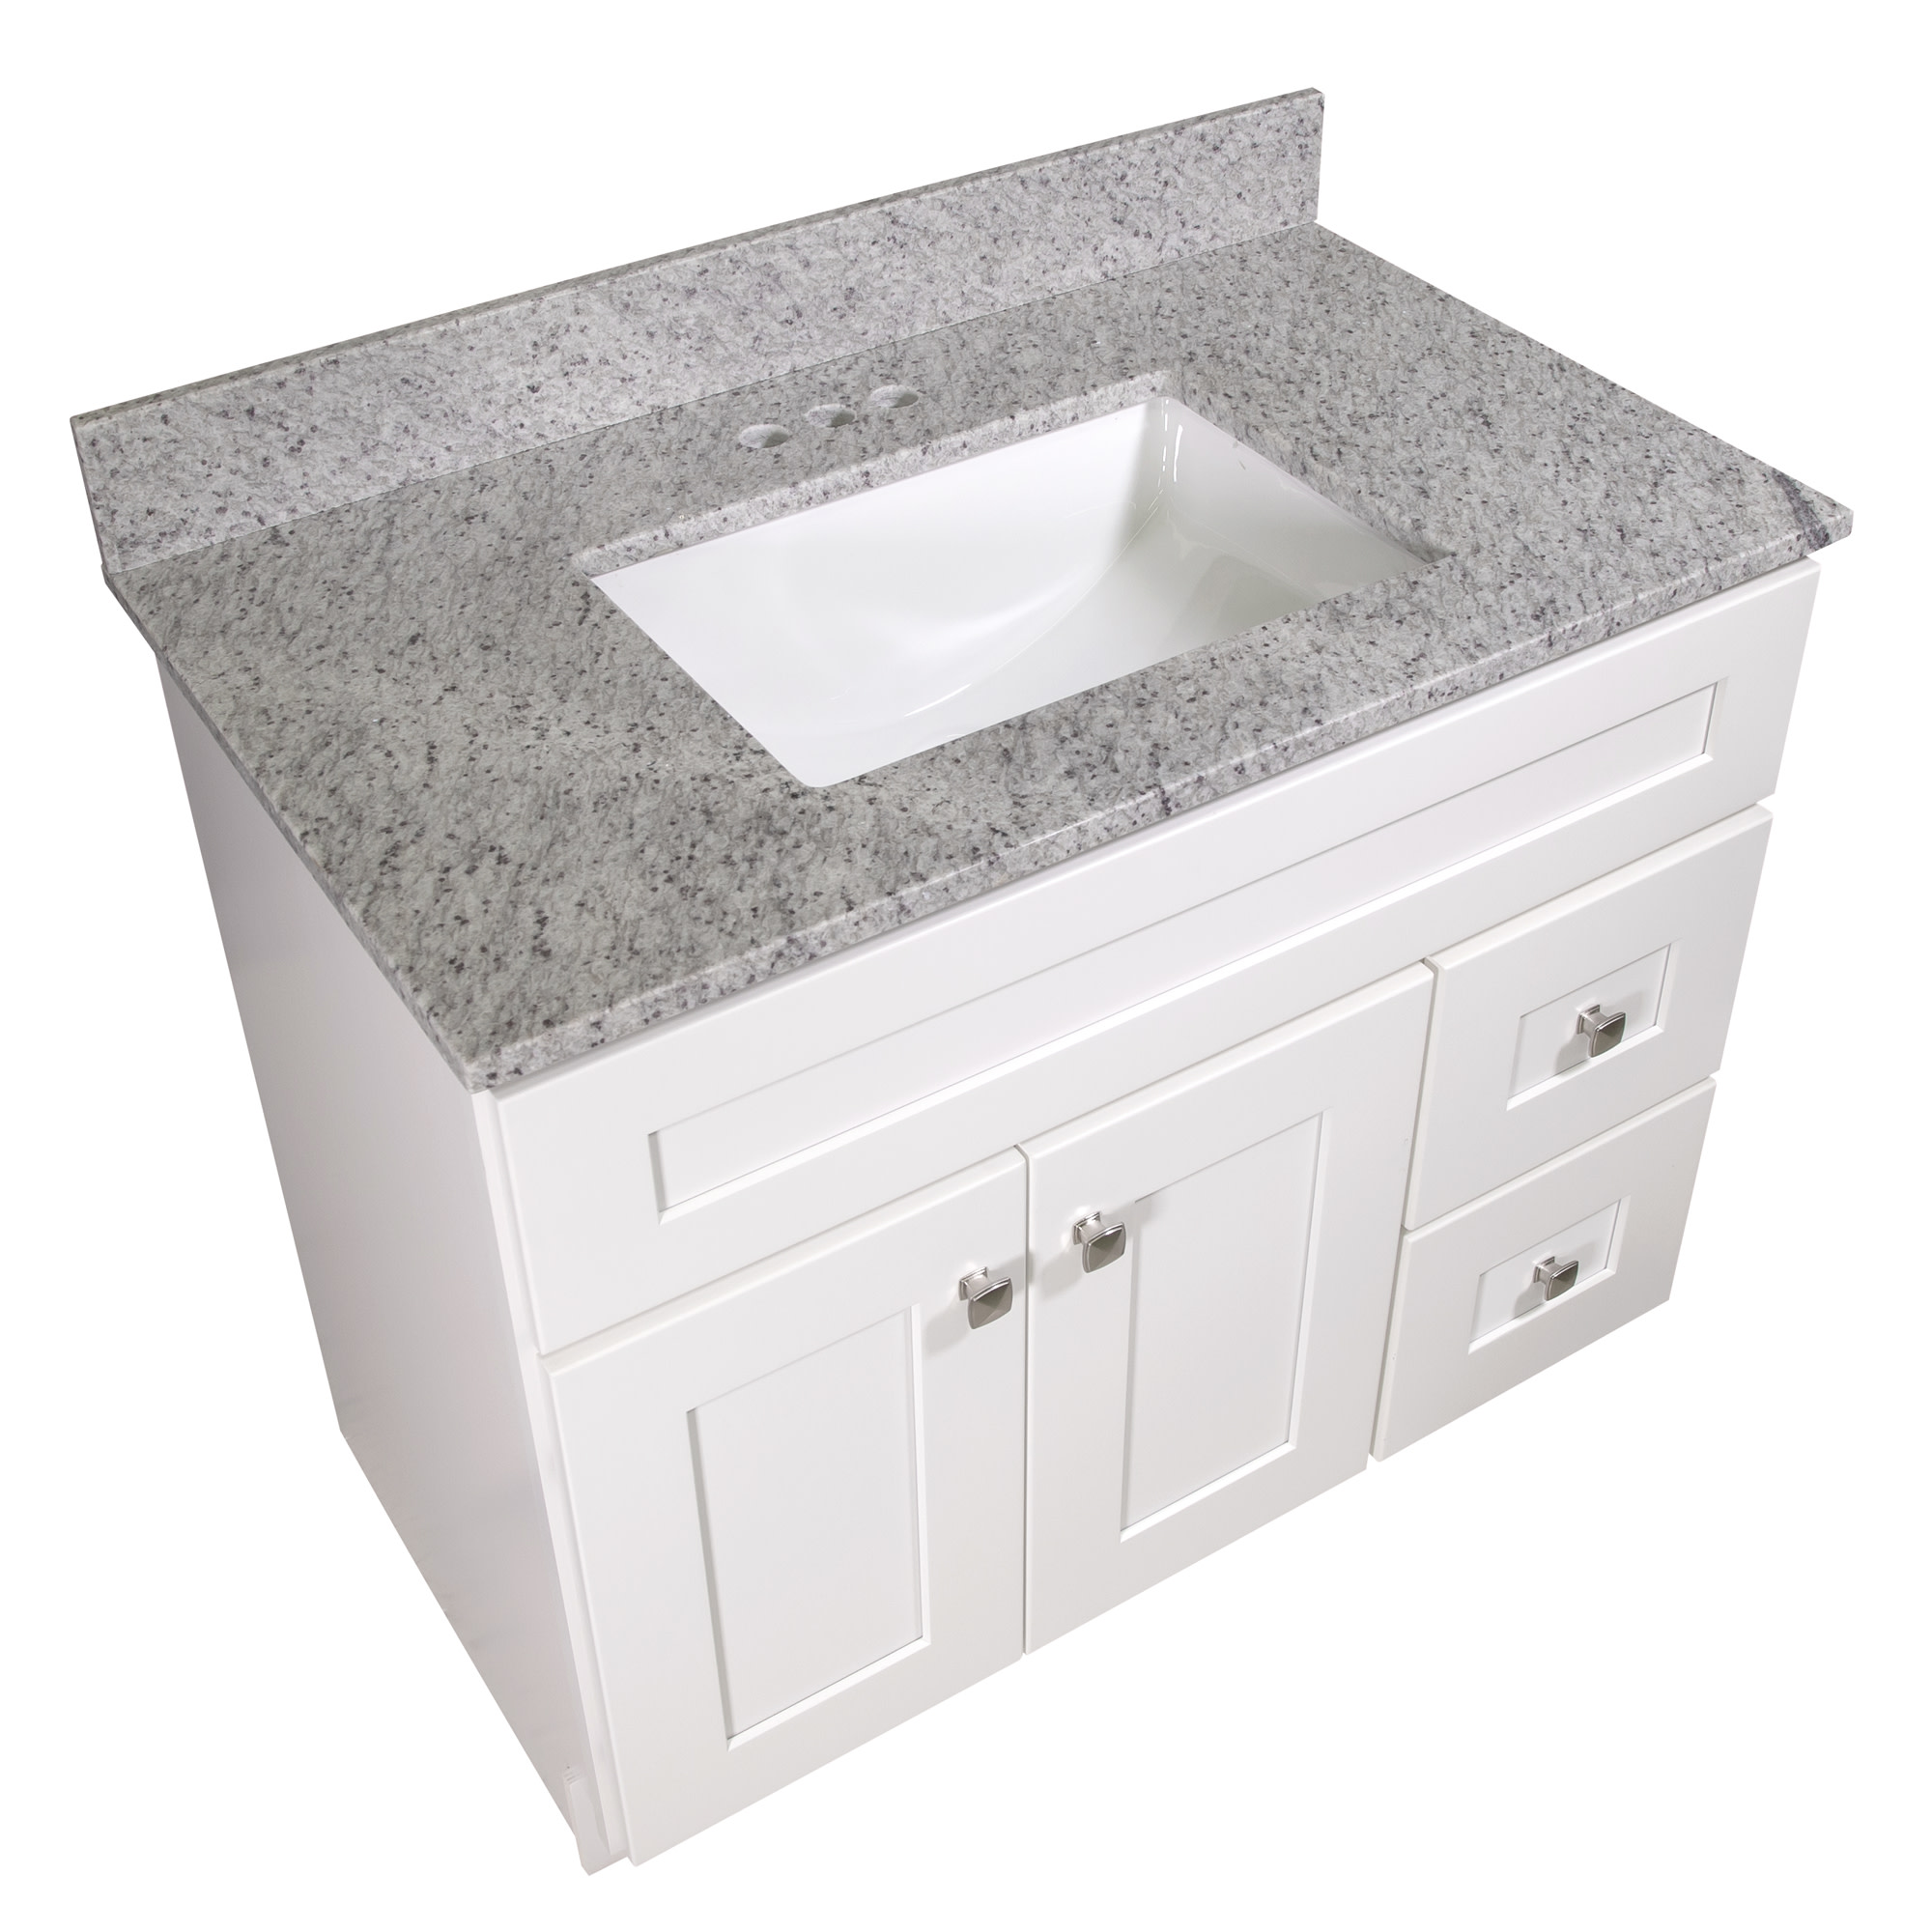 Design House 563346 Granite Single Bowl Vanity Top 37x22 Kashmir White Walmart Com Walmart Com